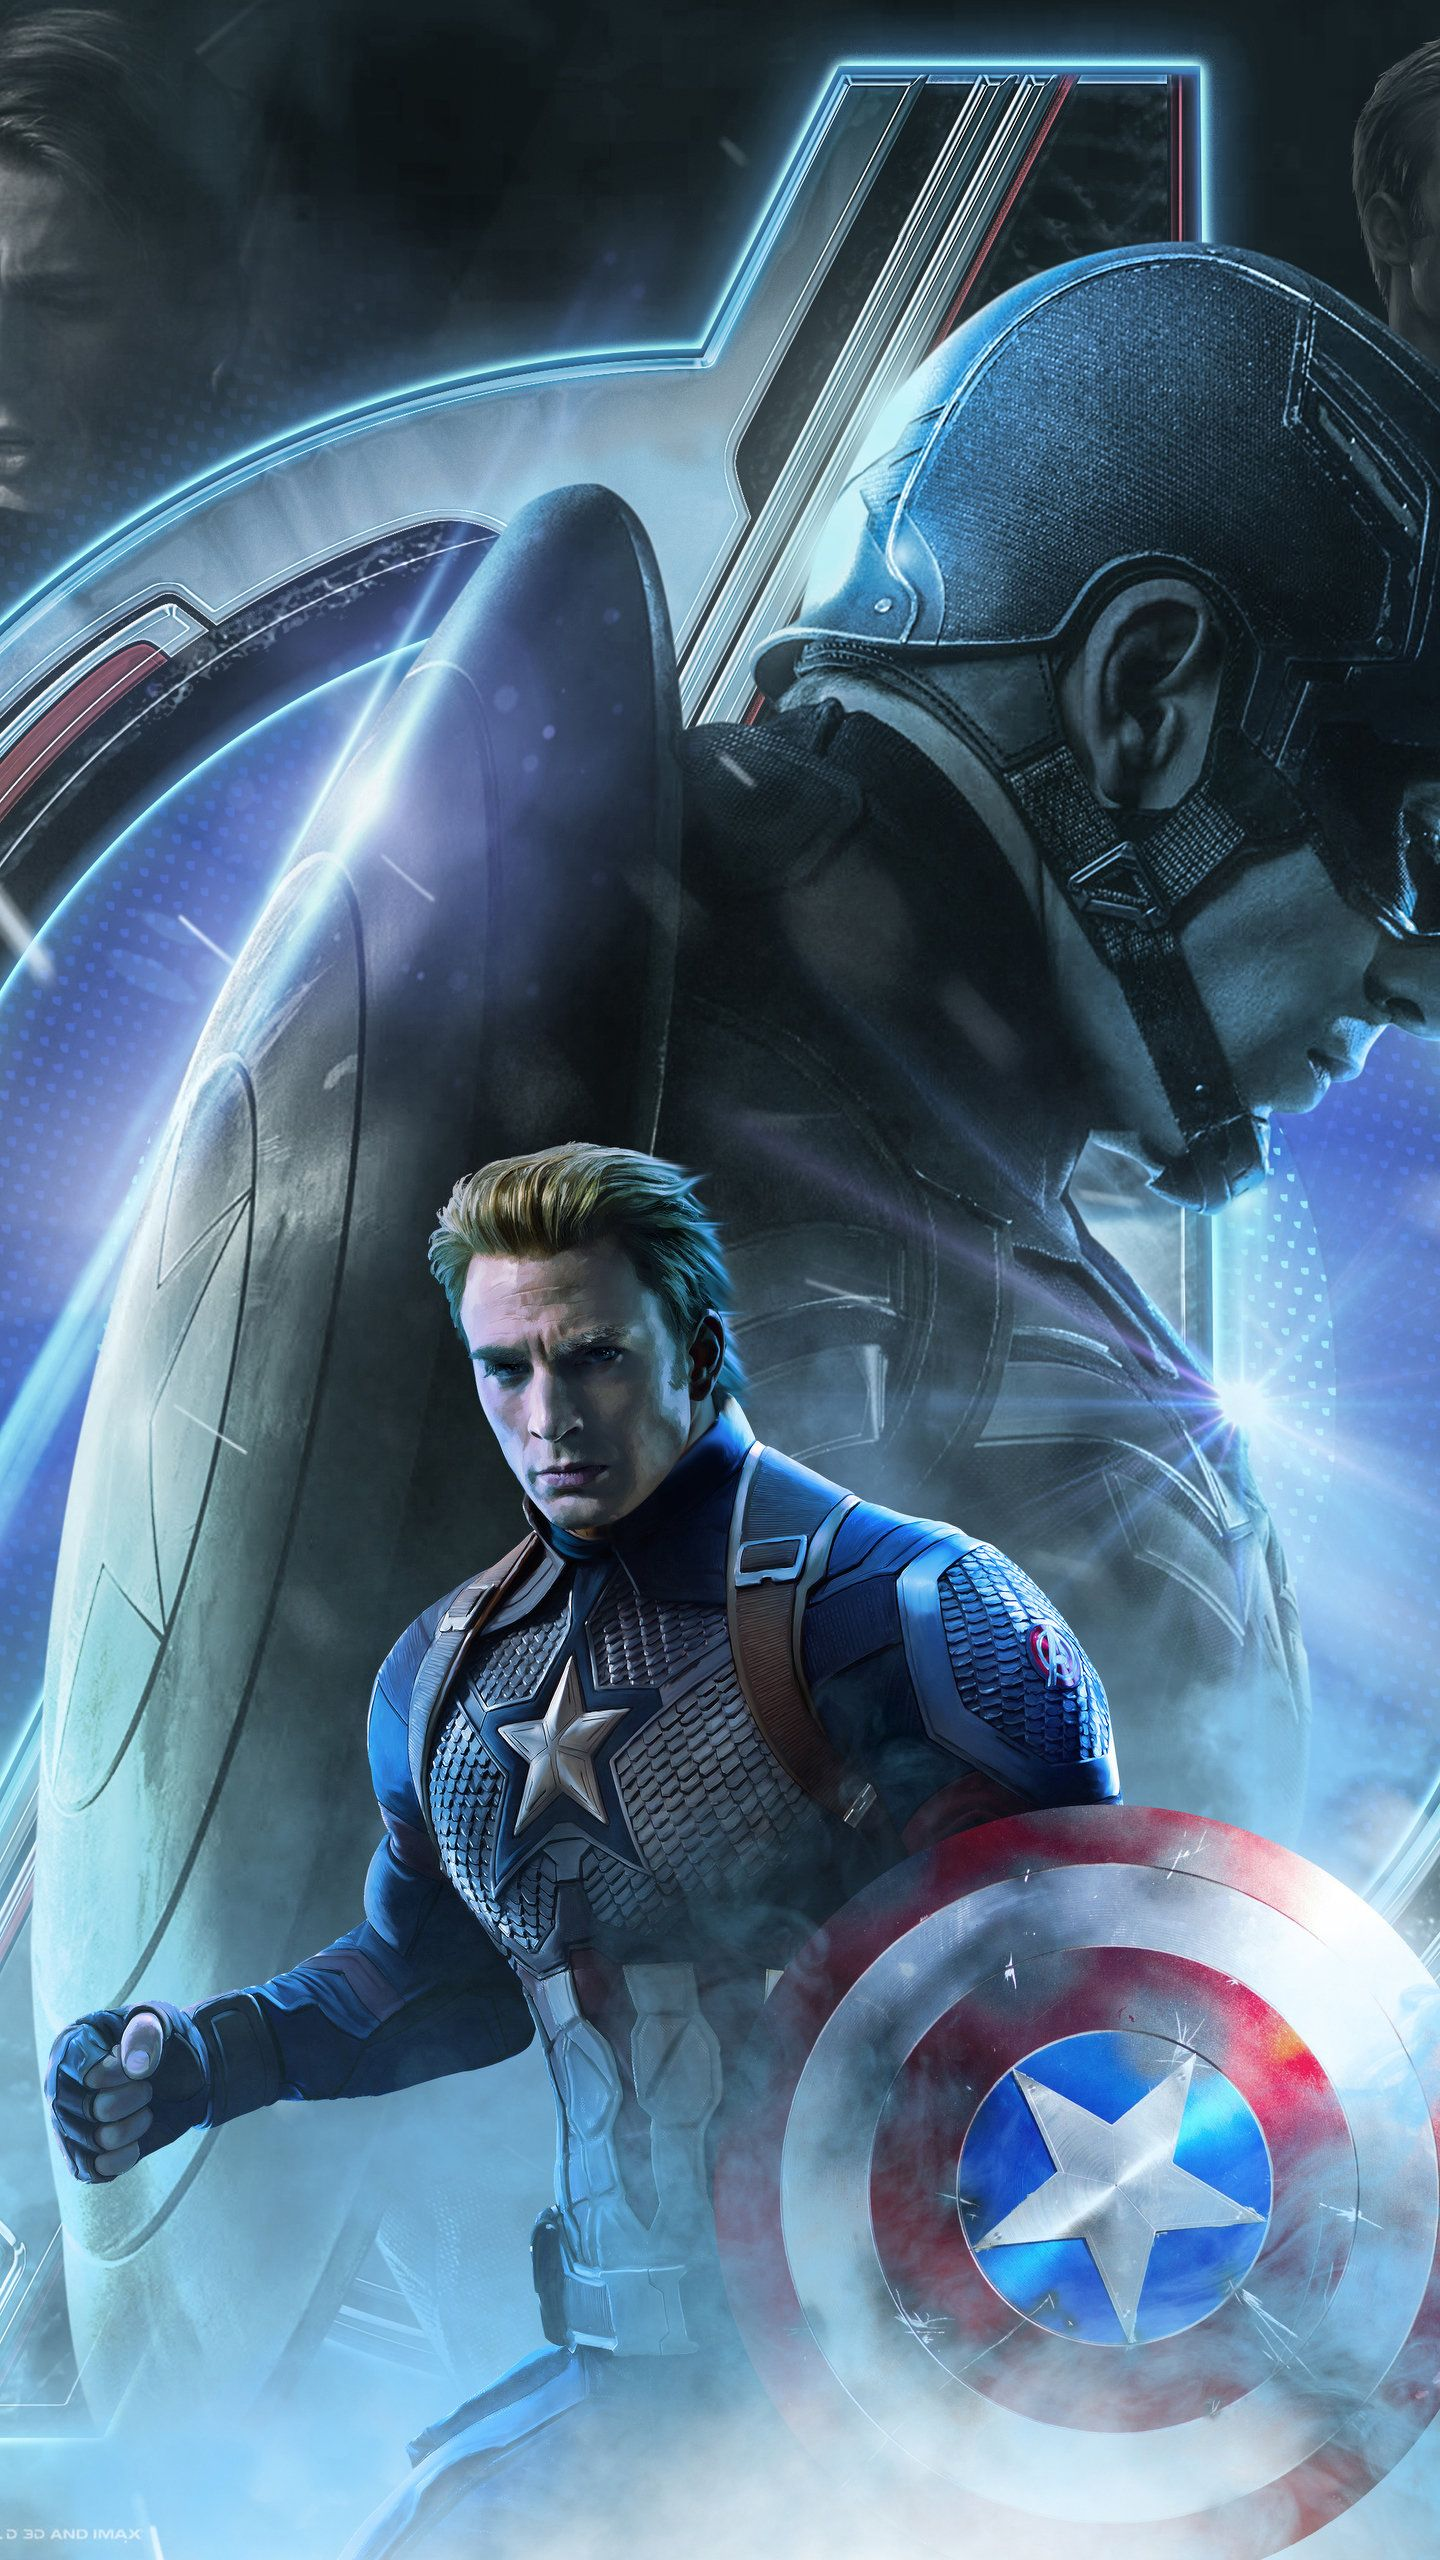 Captain America In Avengers Endgame 2019 Hd Wallpaper 2020